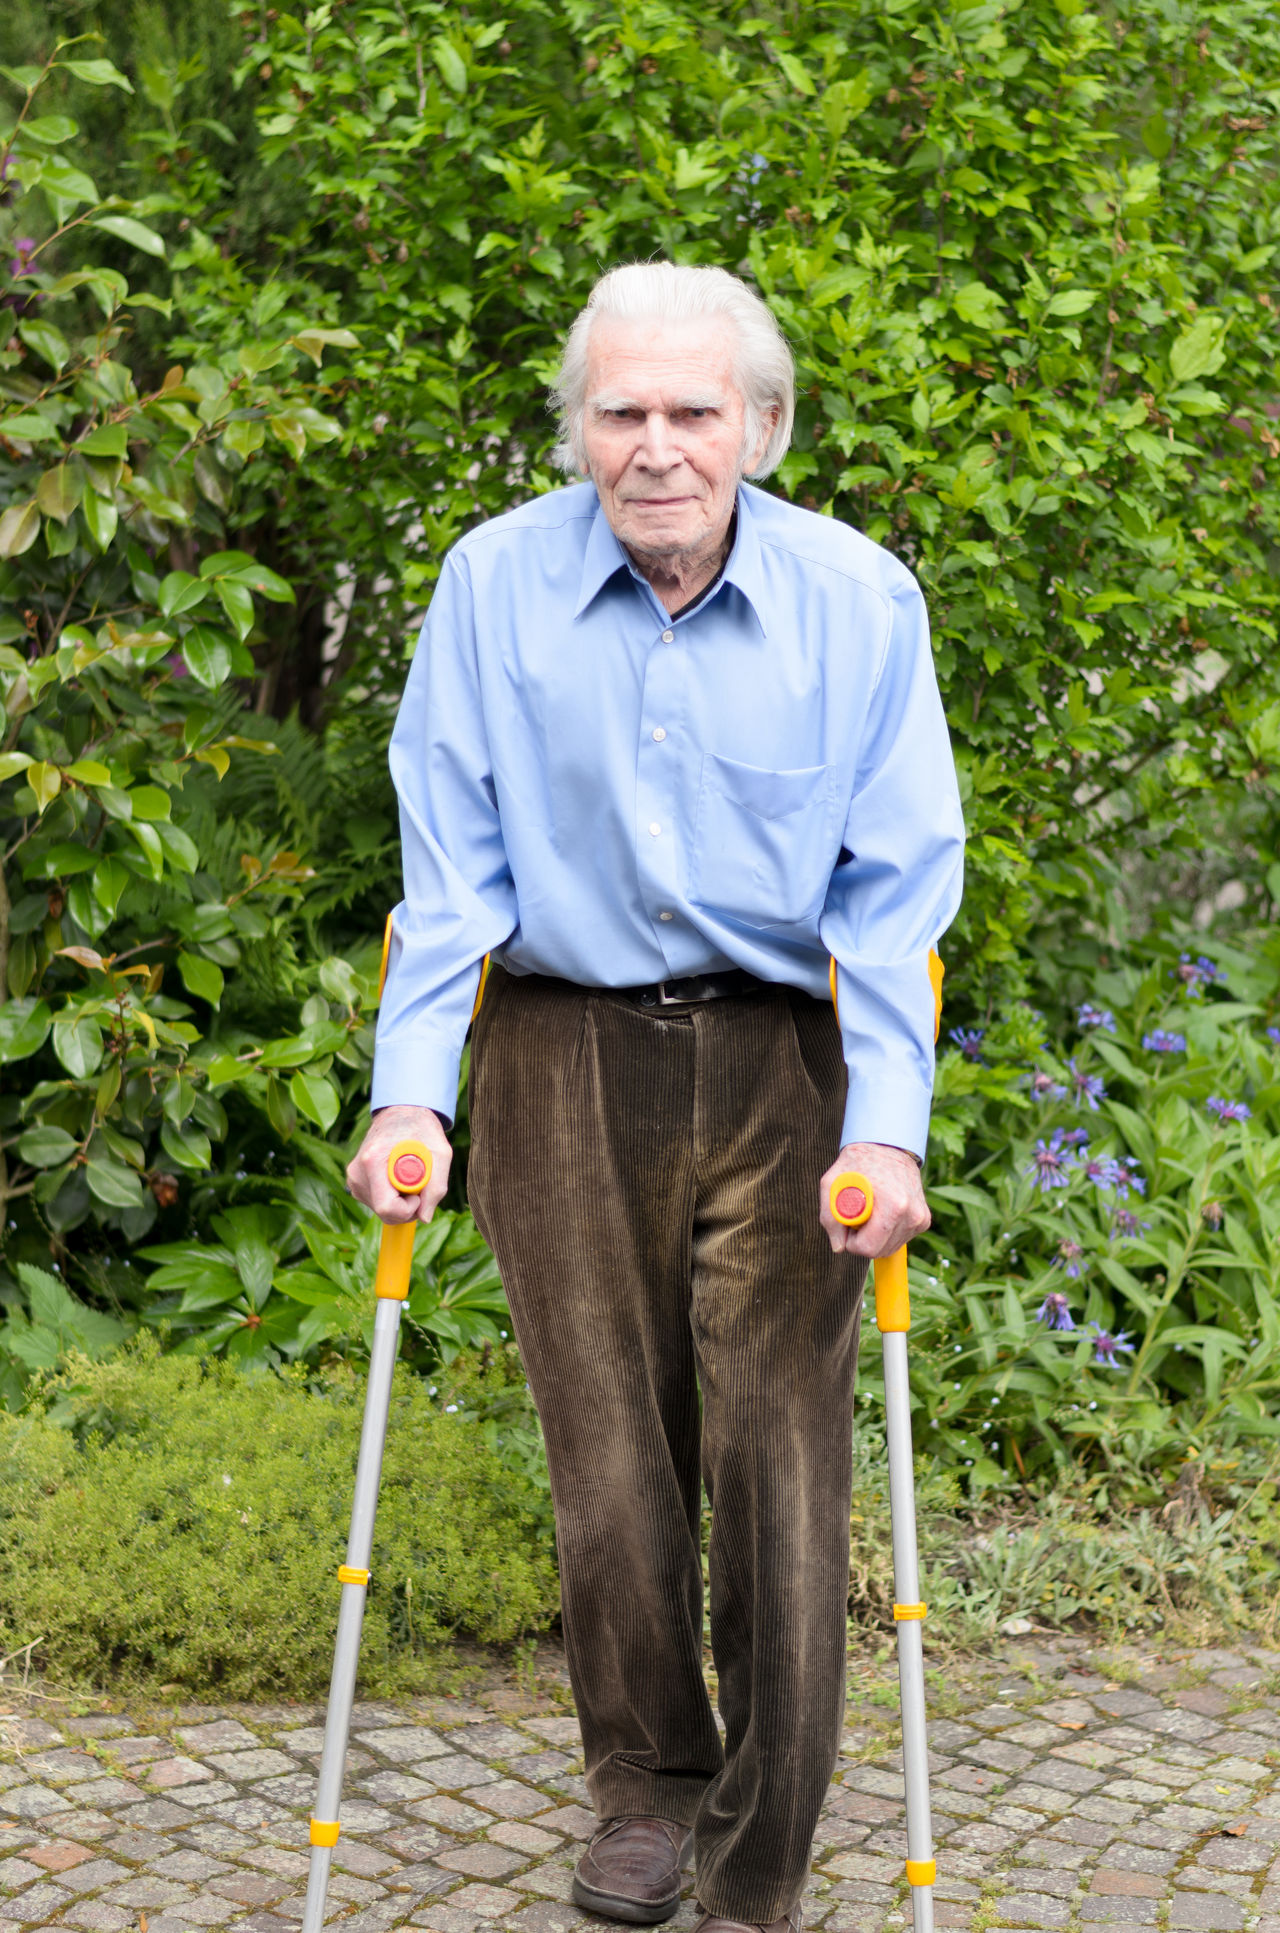 Beautiful stock photos of senior,  80 Plus Years,  Adult,  Adults Only,  Crutch